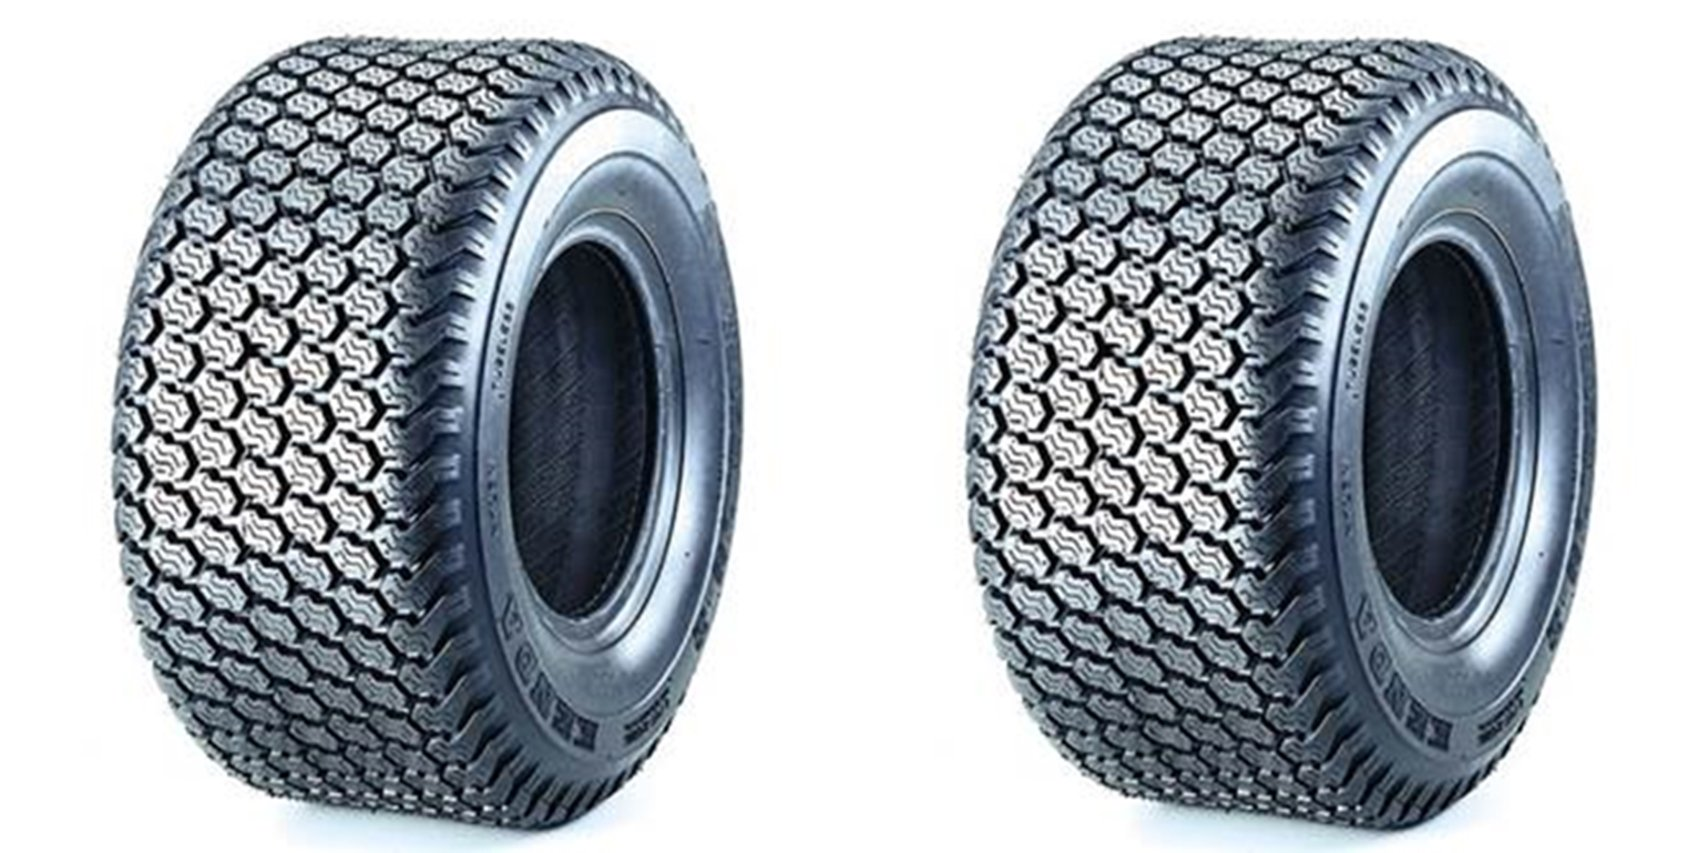 Set of 2 Super Turf Kenda Tires 24x9.5-12 24x9.5x12 K500 TURF TIRES TUBLESS 4PLY RATED